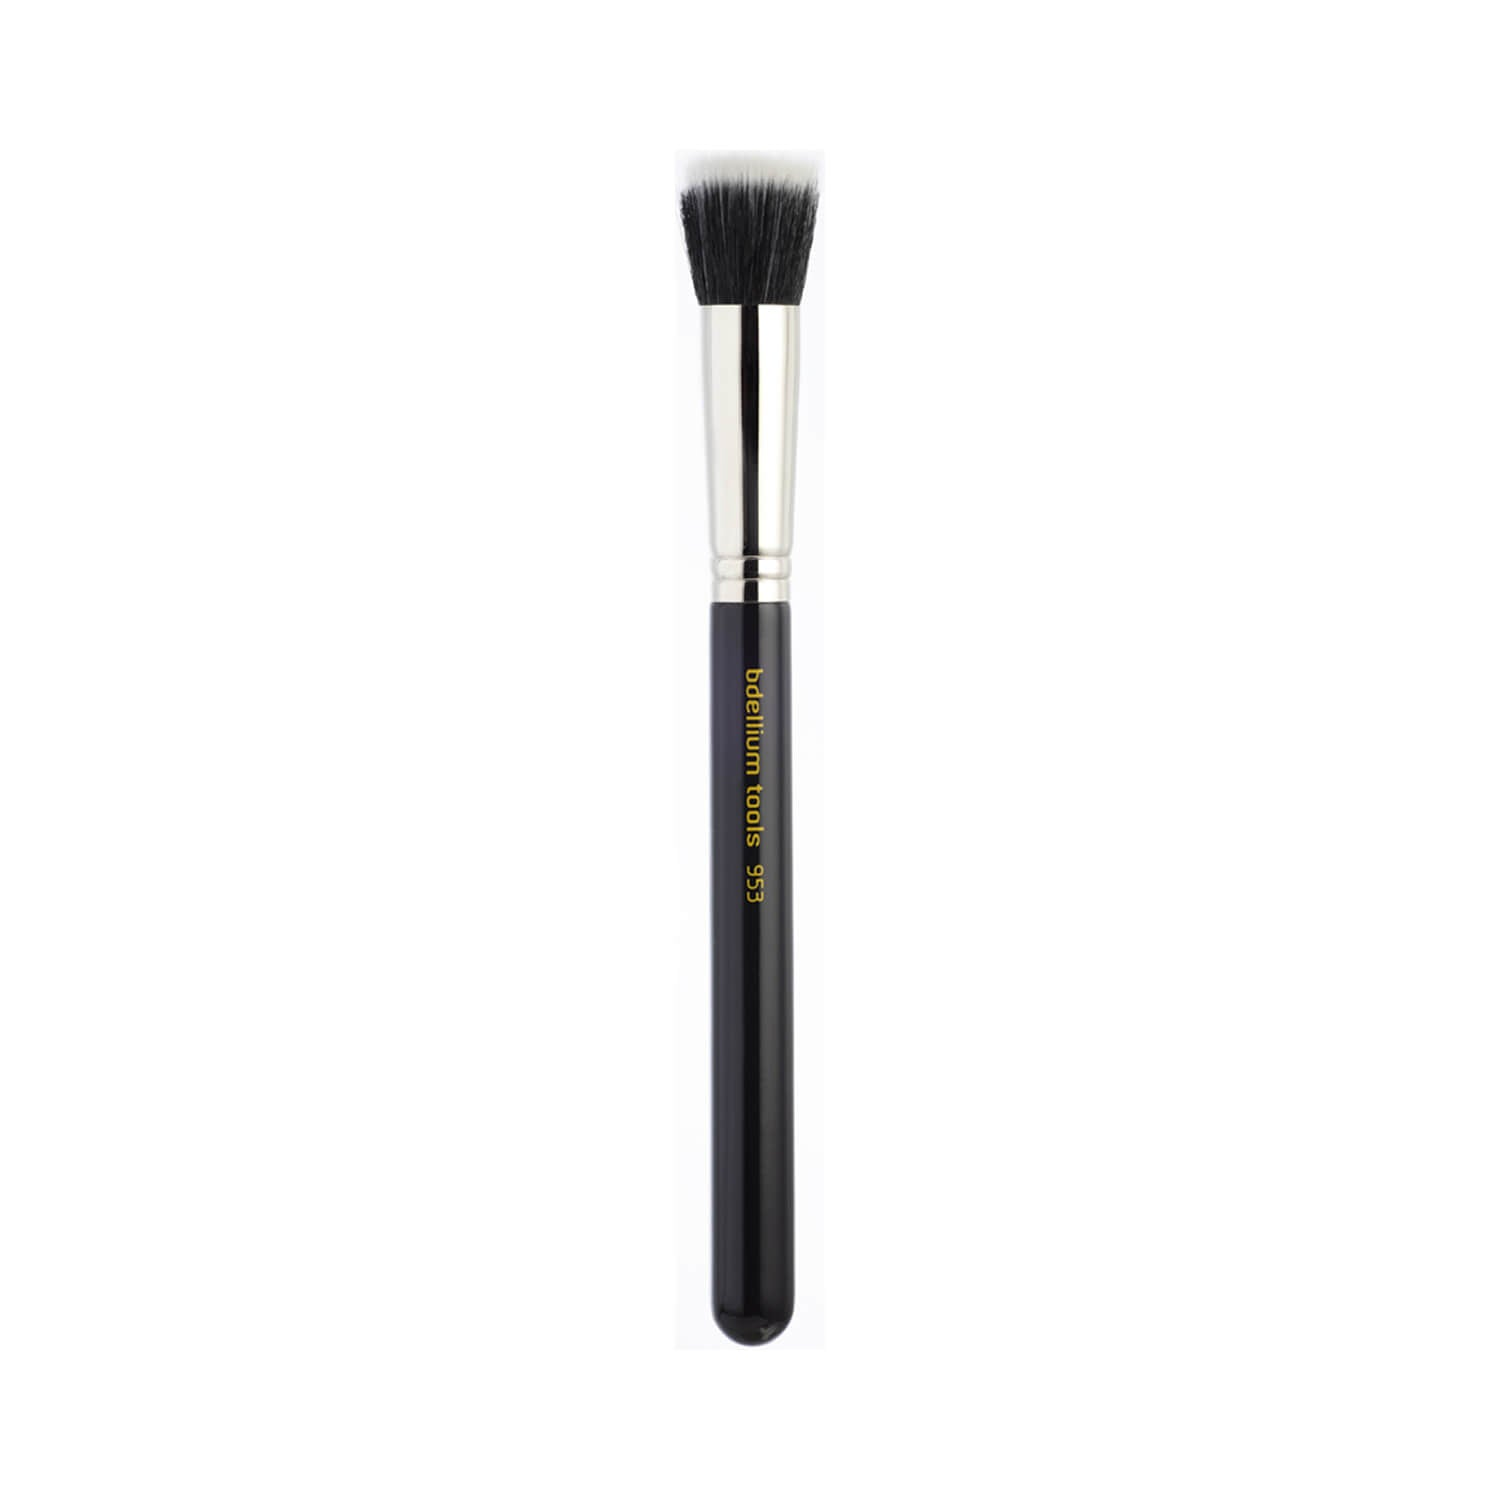 BDellium Tools Maestro Line 953 Duet Fiber Foundation Brush Black